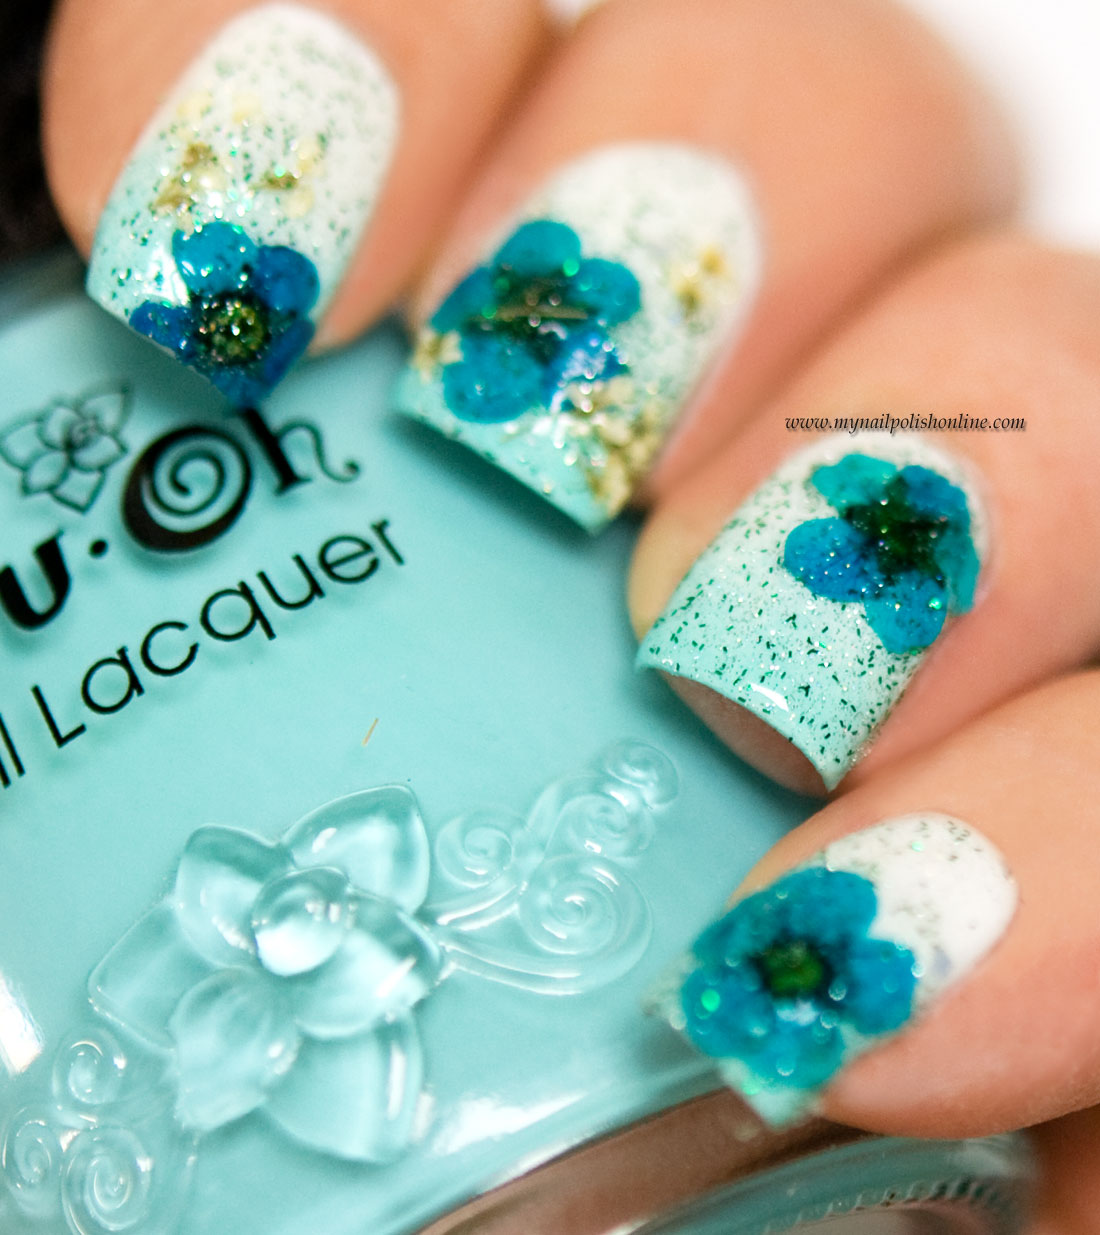 How to make dried flowers for nail art best nail ideas nail art fl design with dry flowers my polish prinsesfo Gallery